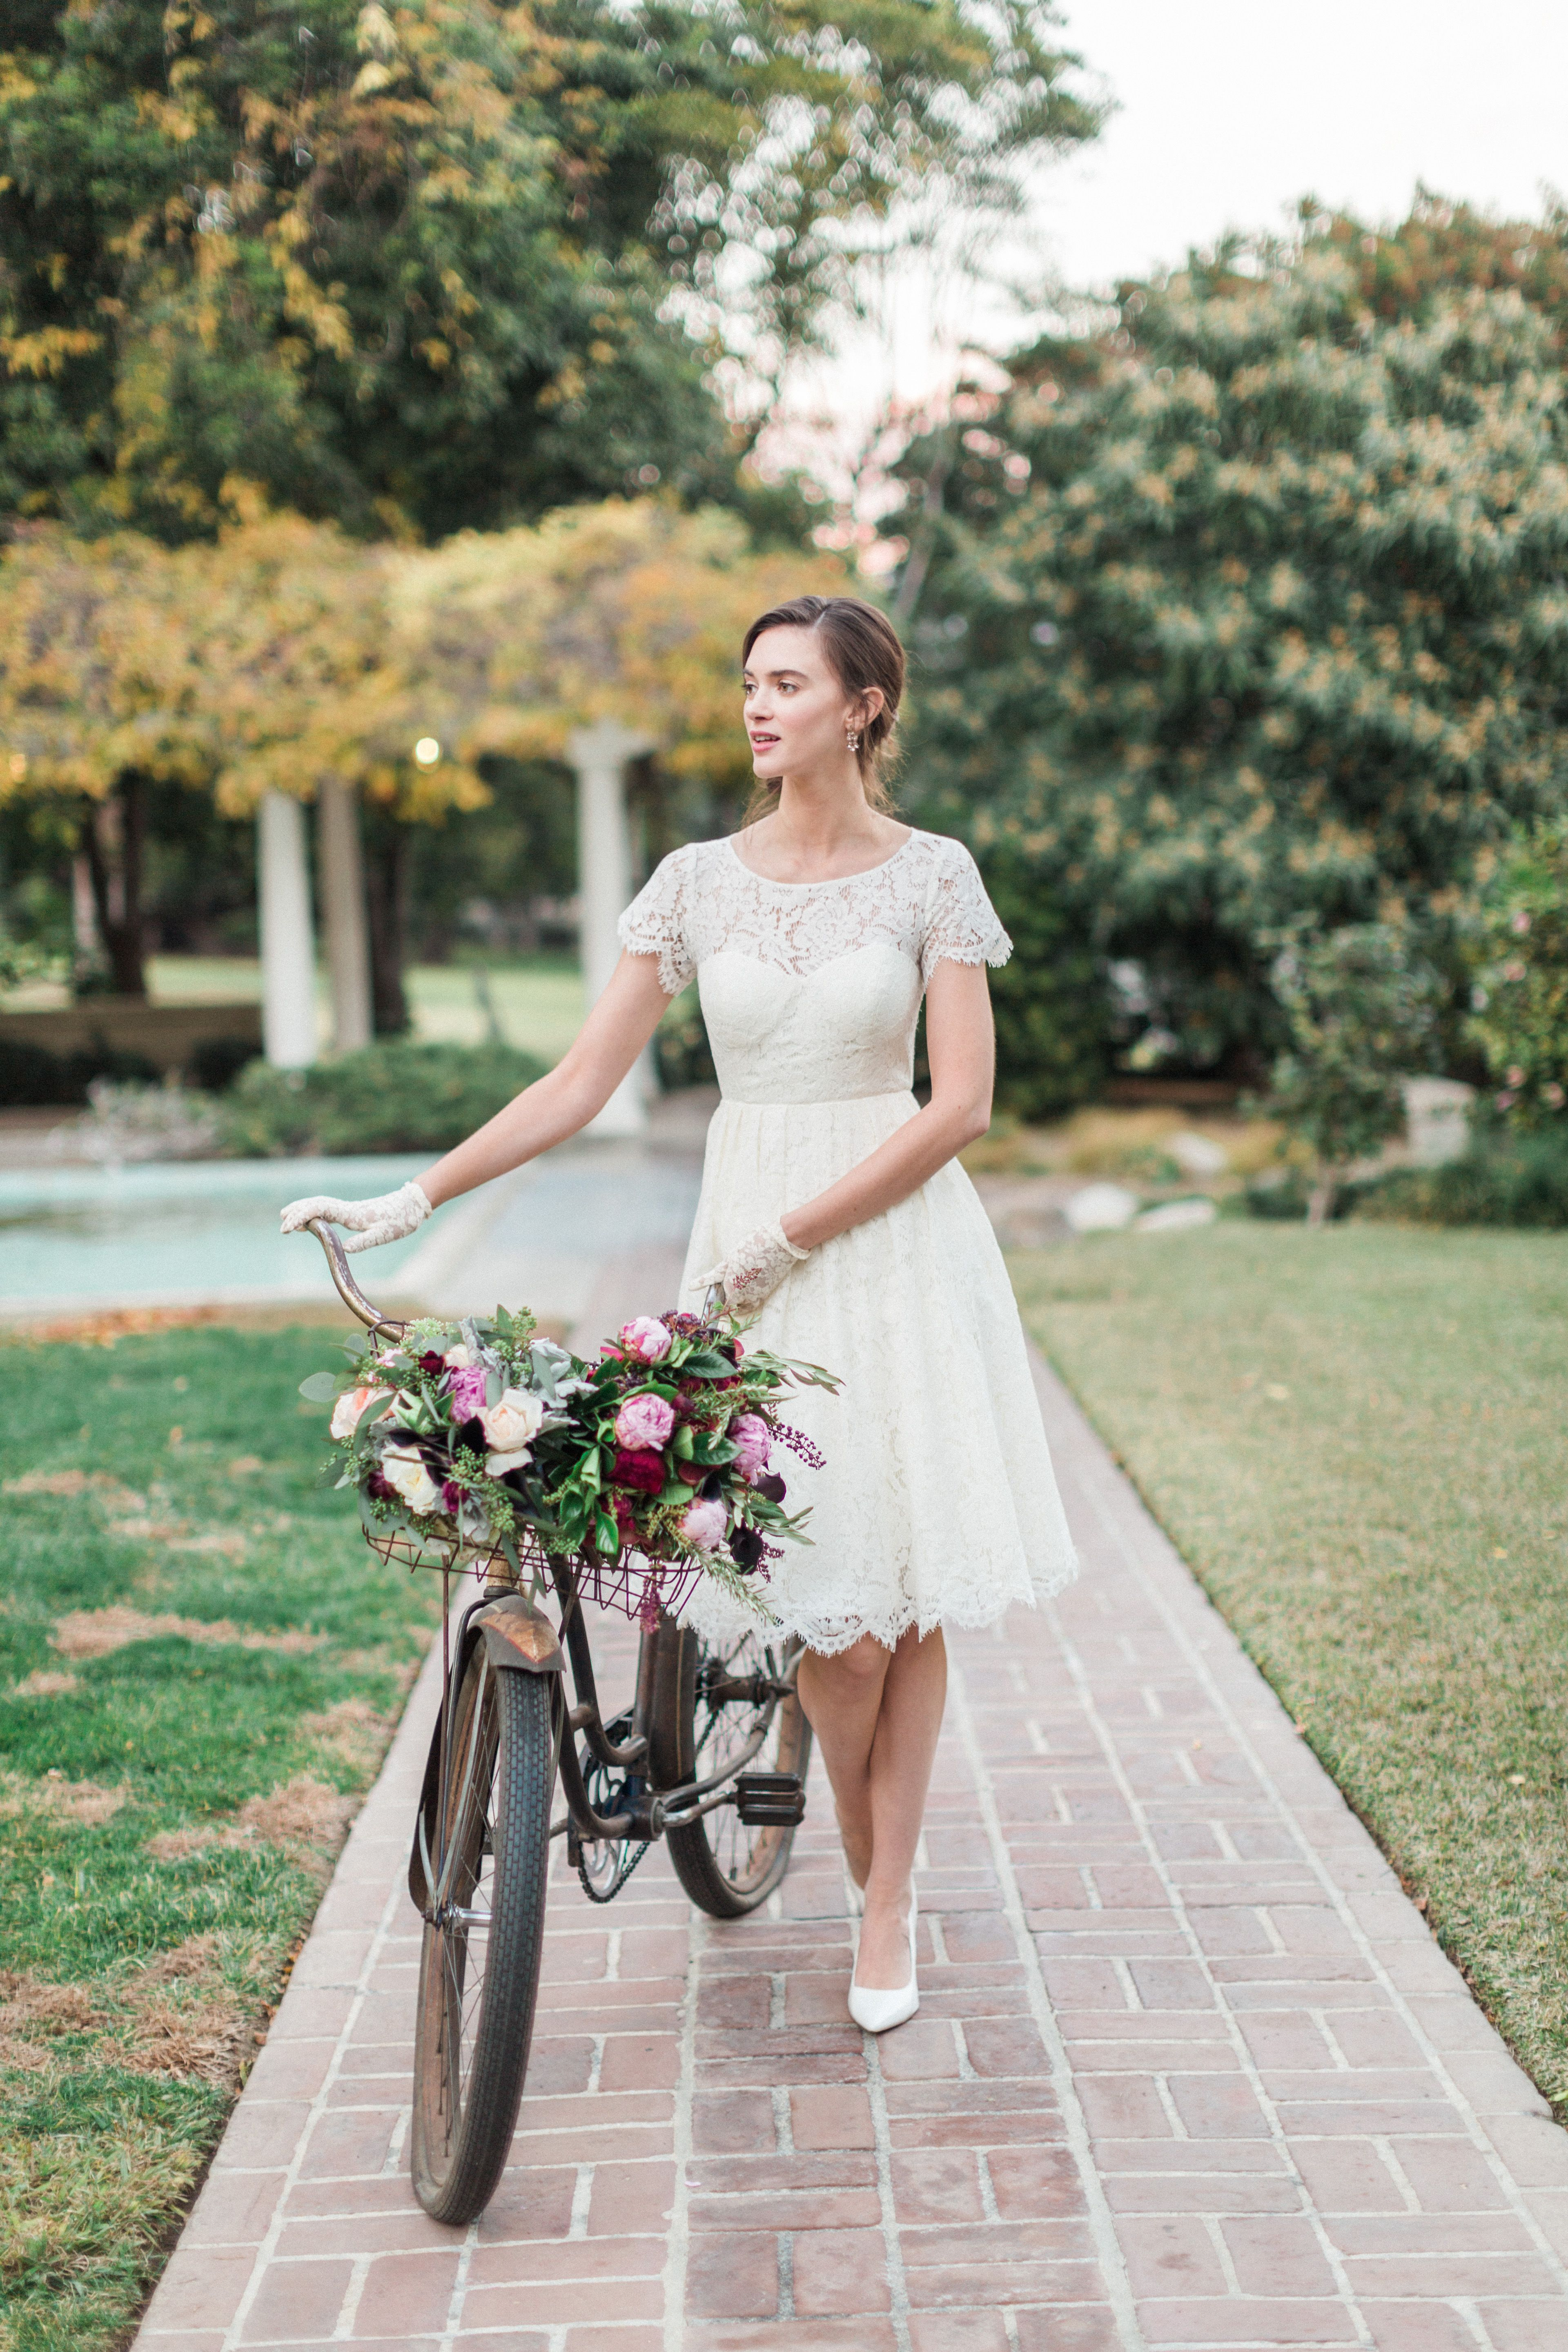 Cadence Dress By Jenny Yoo A Feminine Short Knee Length Creating Diffe Alternative To Traditional Wedding Gown